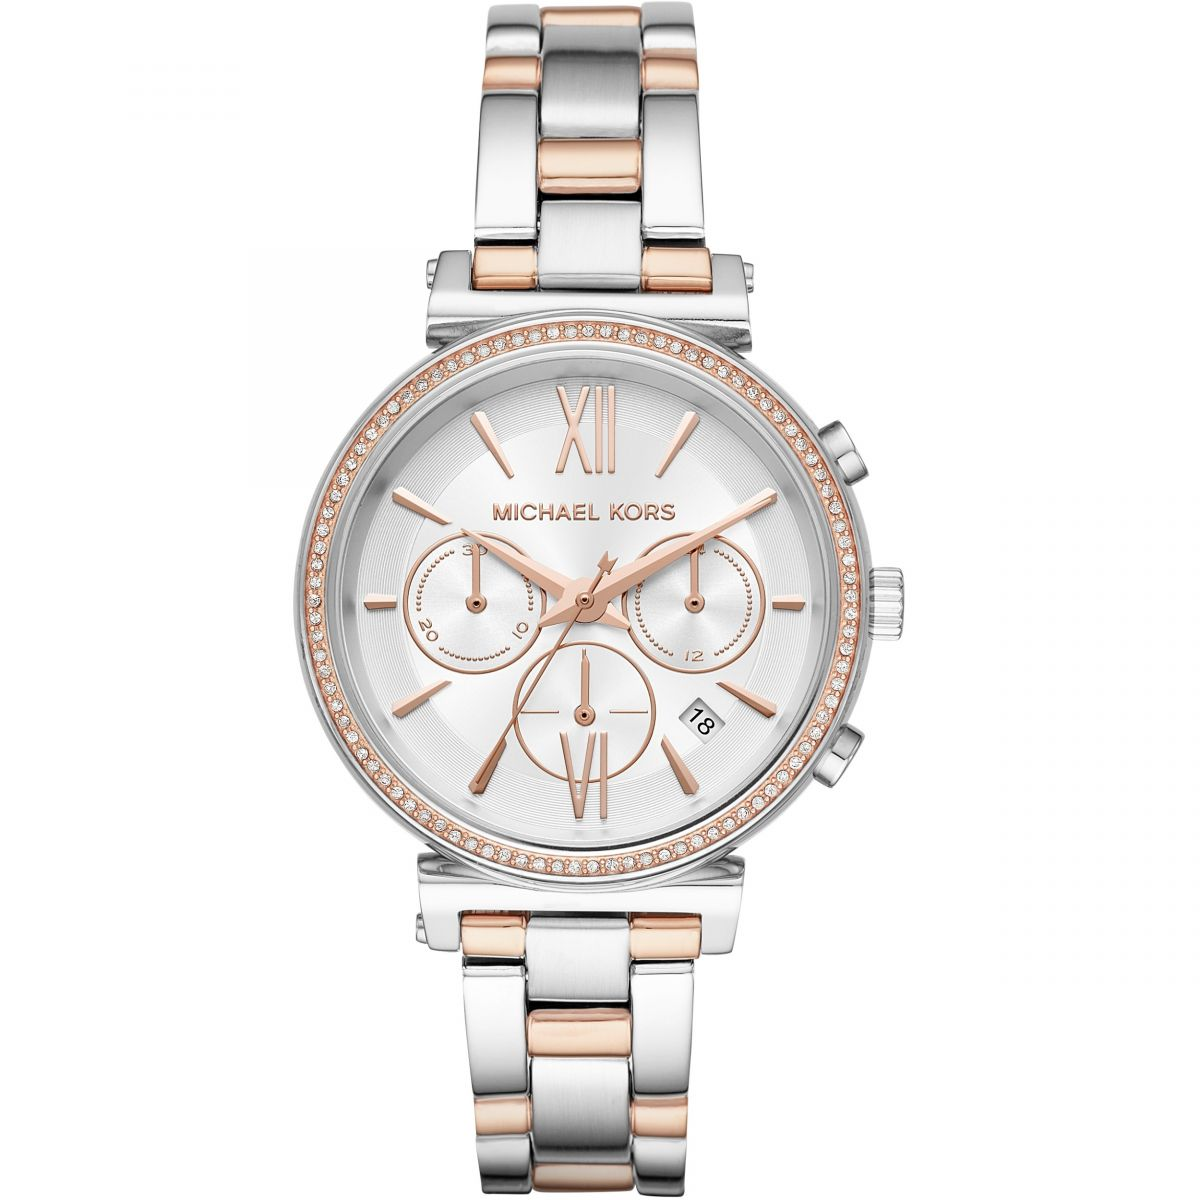 Michael Kors Sofie Watch MK WatchShopcom - Invoice sample word michael kors outlet online store